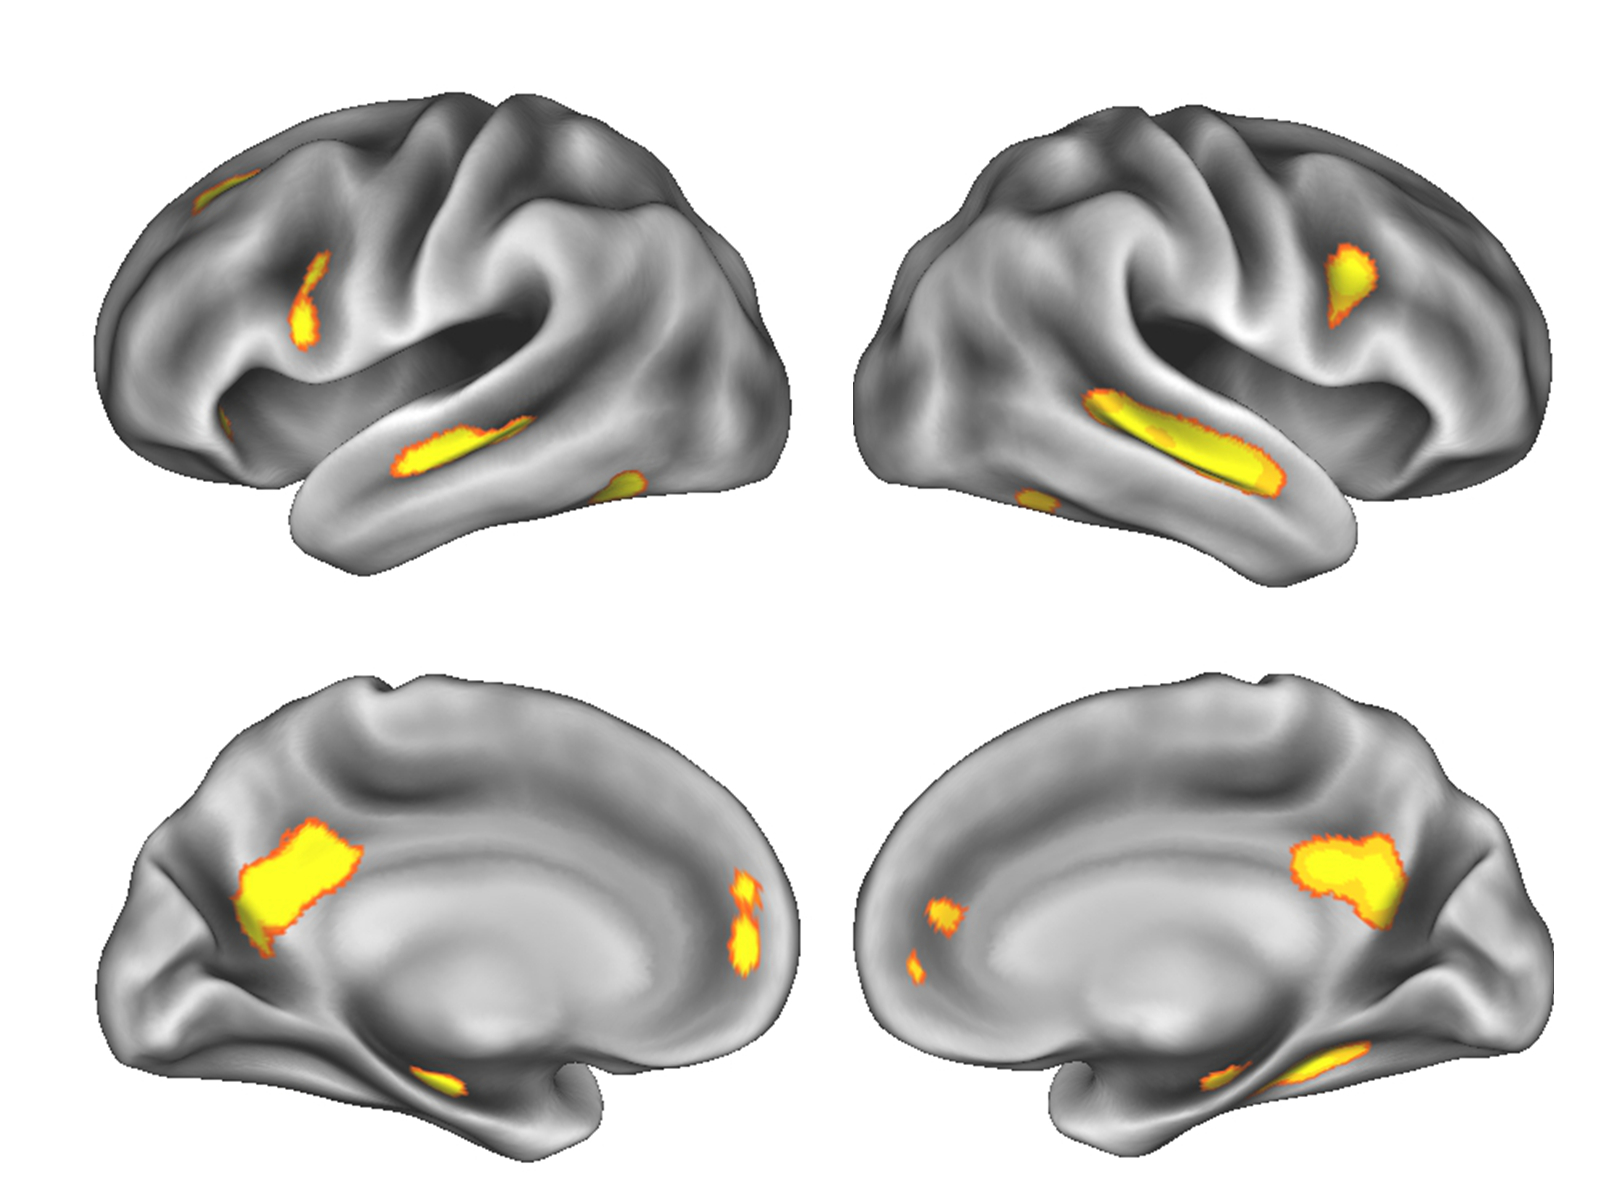 small resolution of image of gray matter changes in the brain during pregnancy